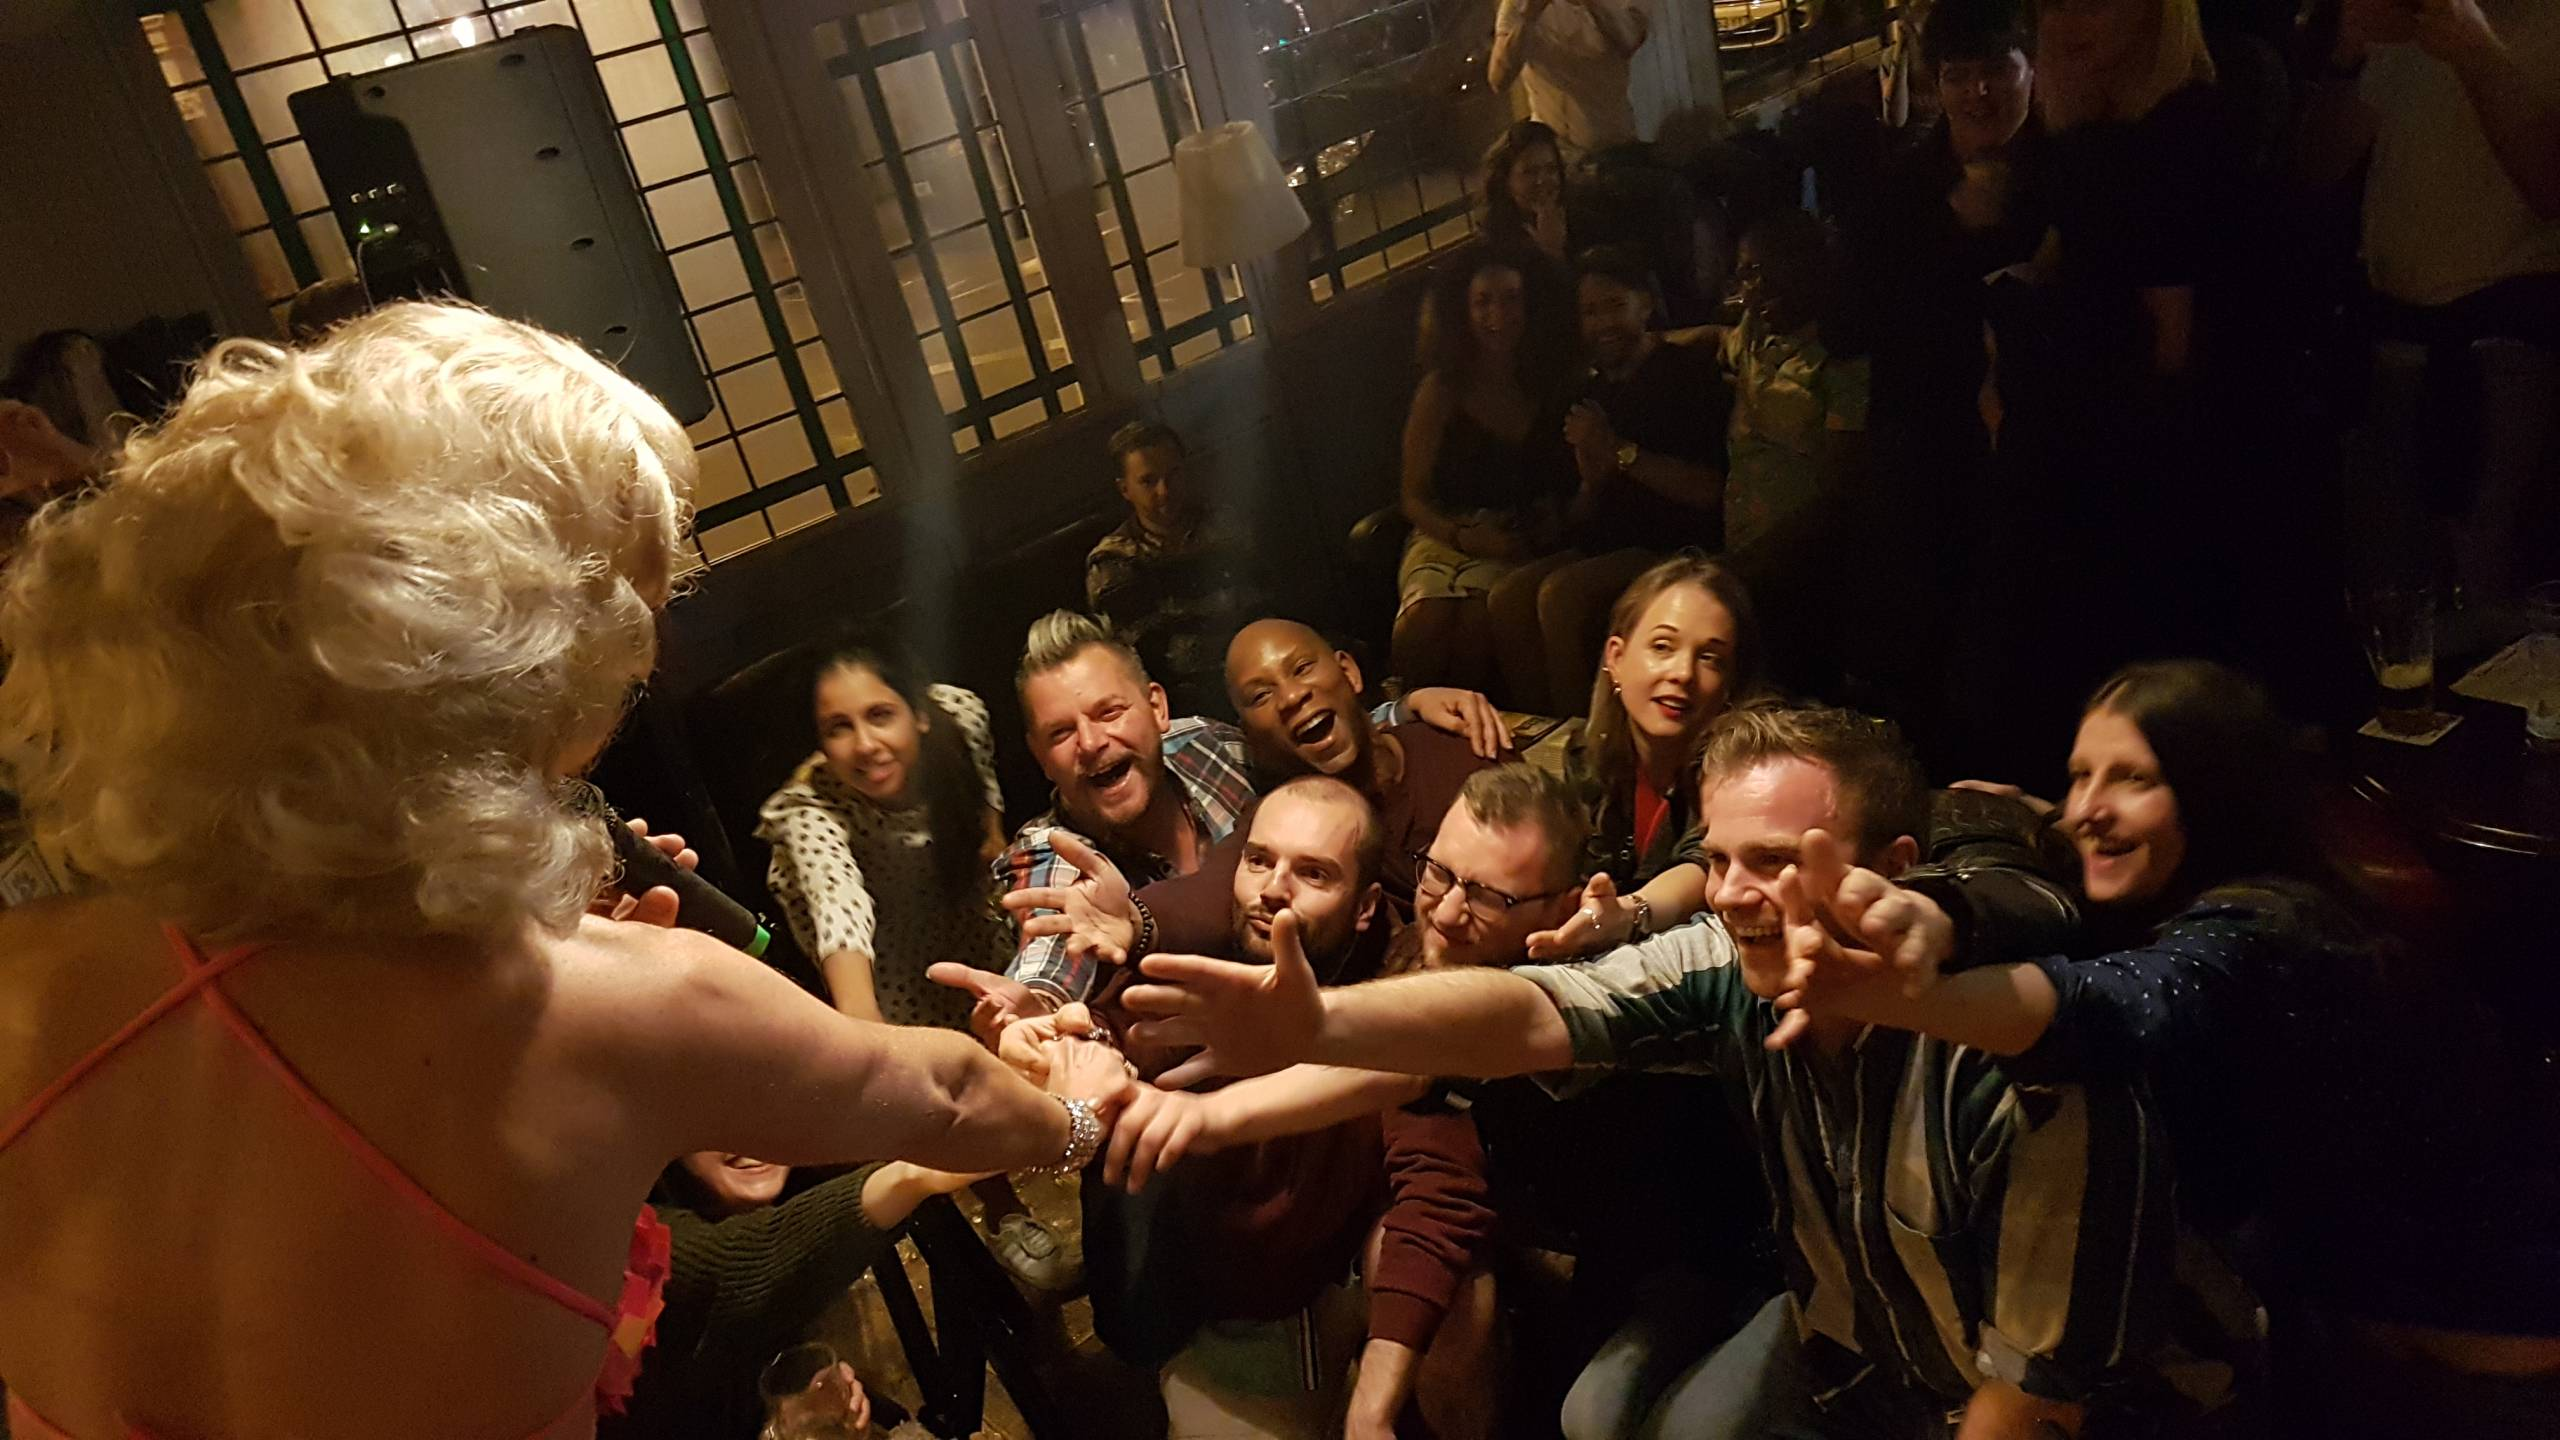 Fonda and her many fans at the Northcote Arms